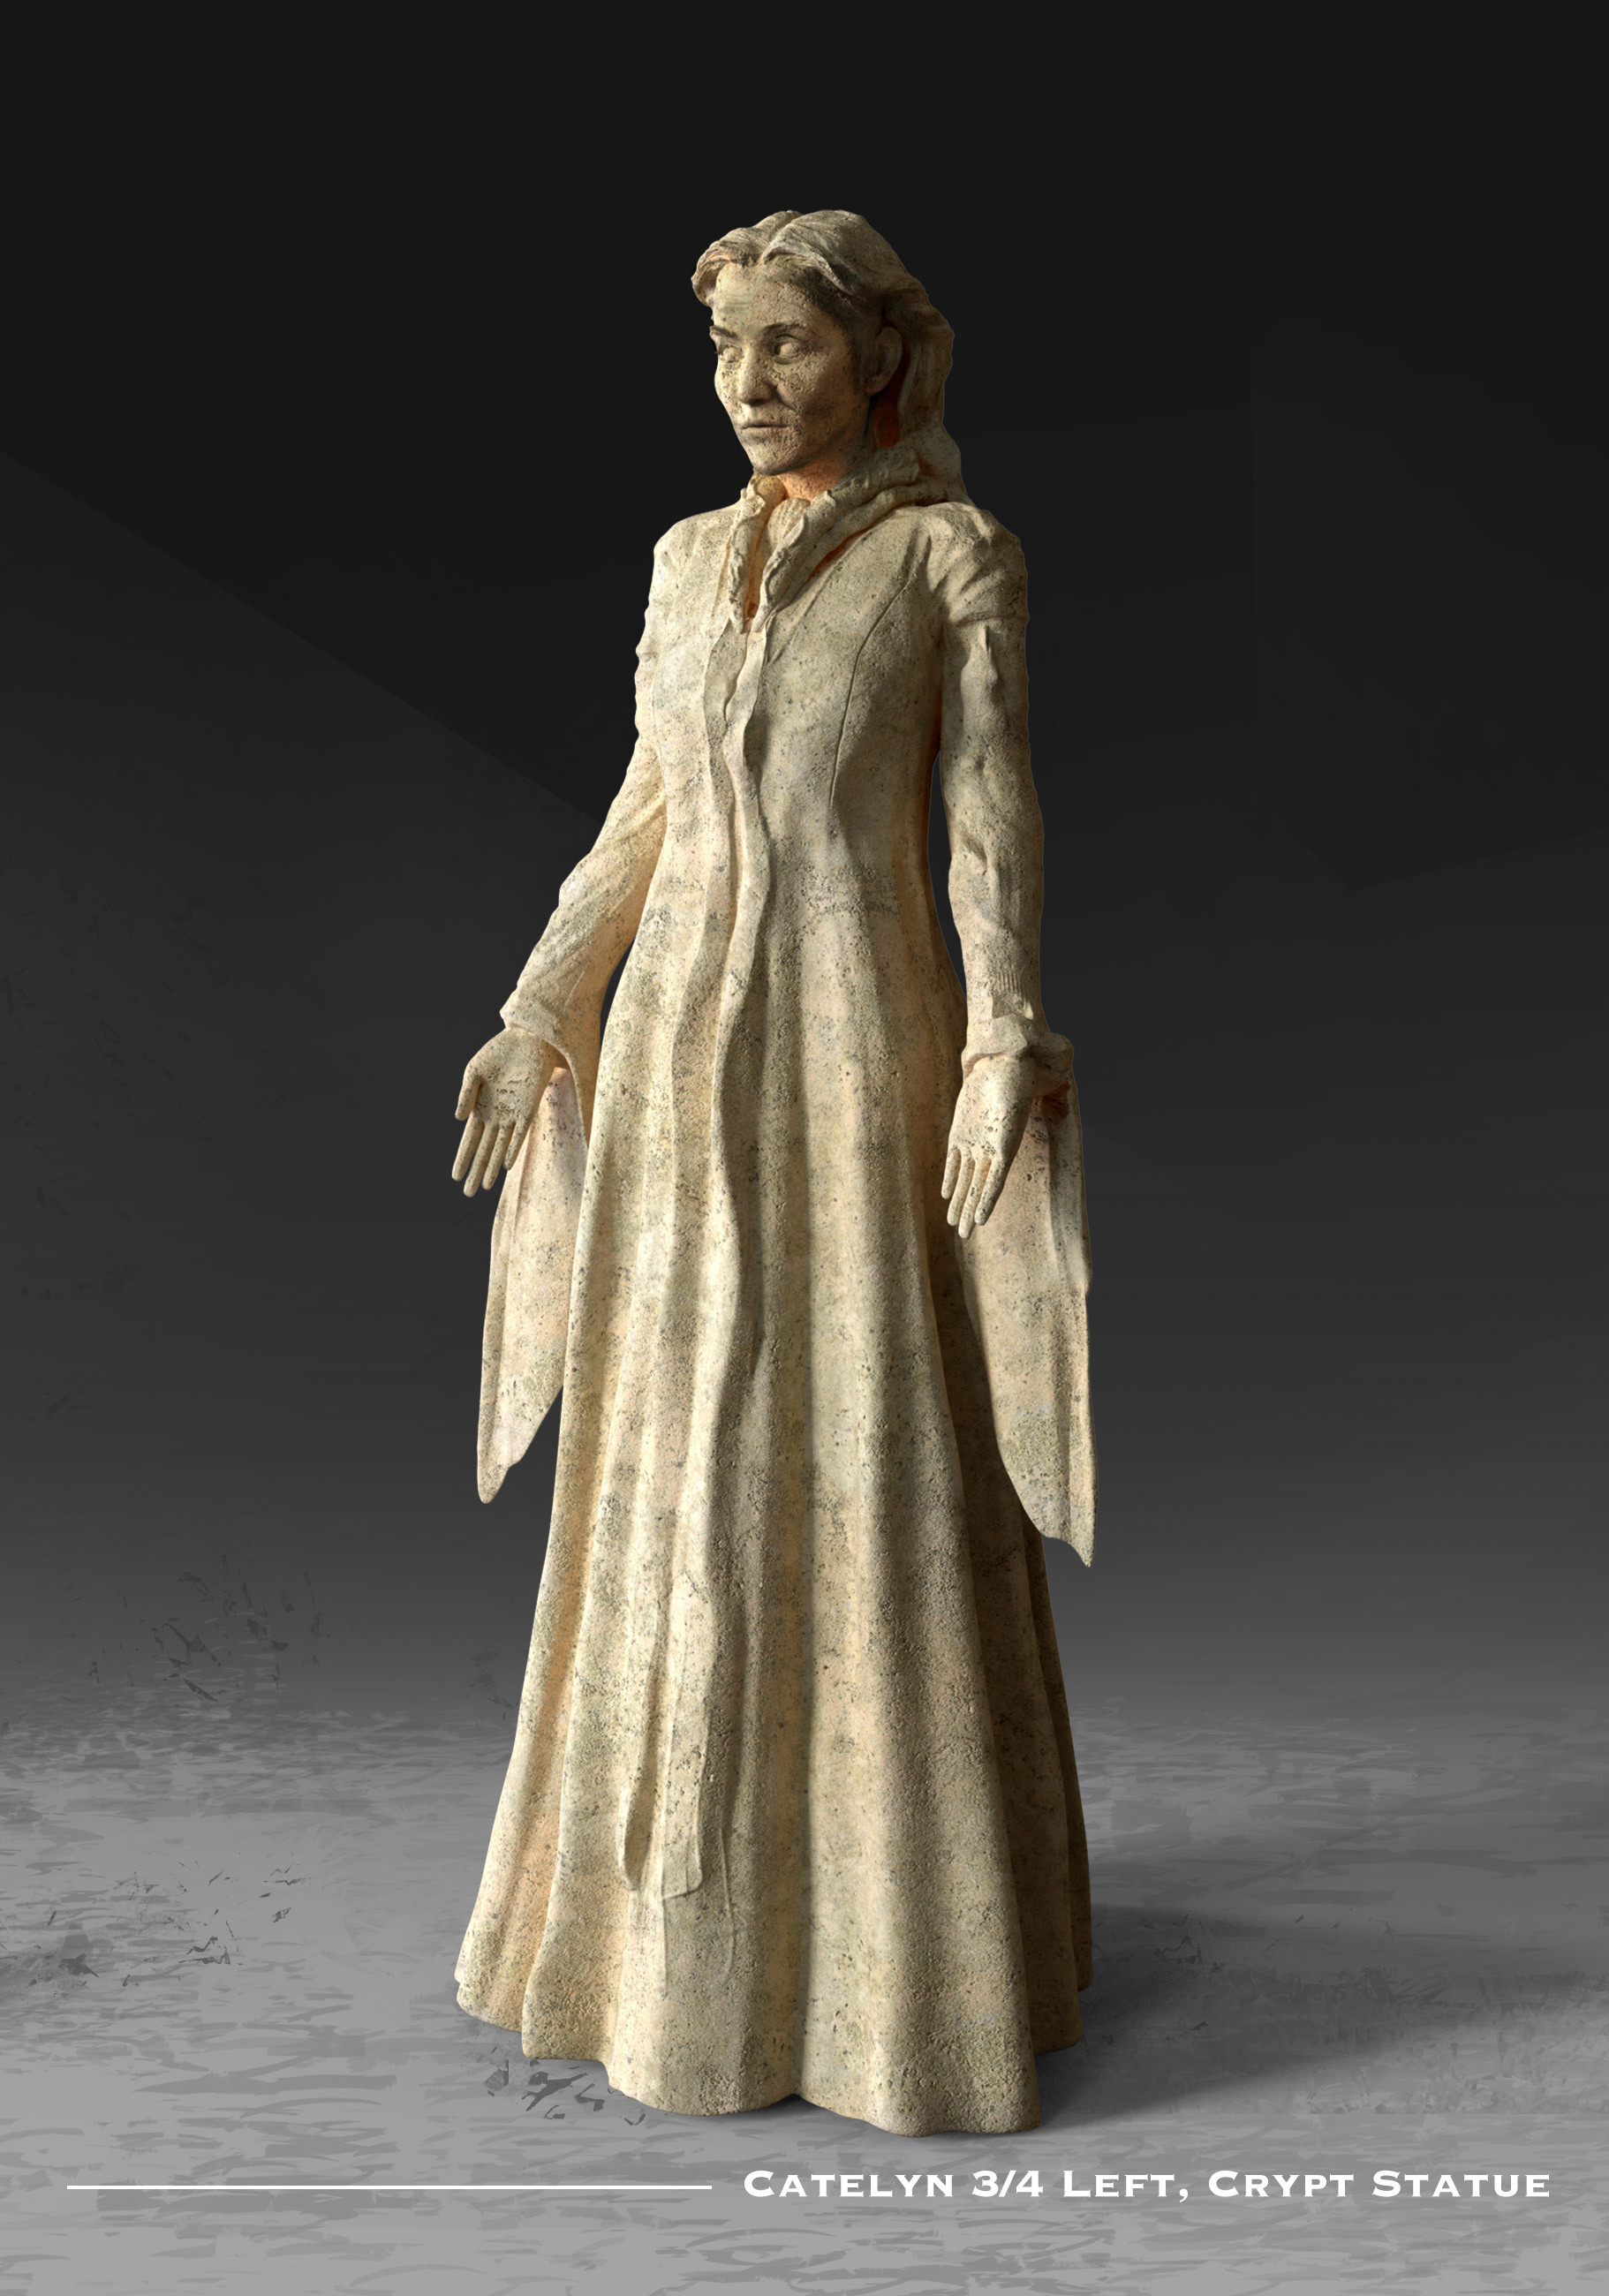 Kieran belshaw catelyn statue 3quarterleft v002